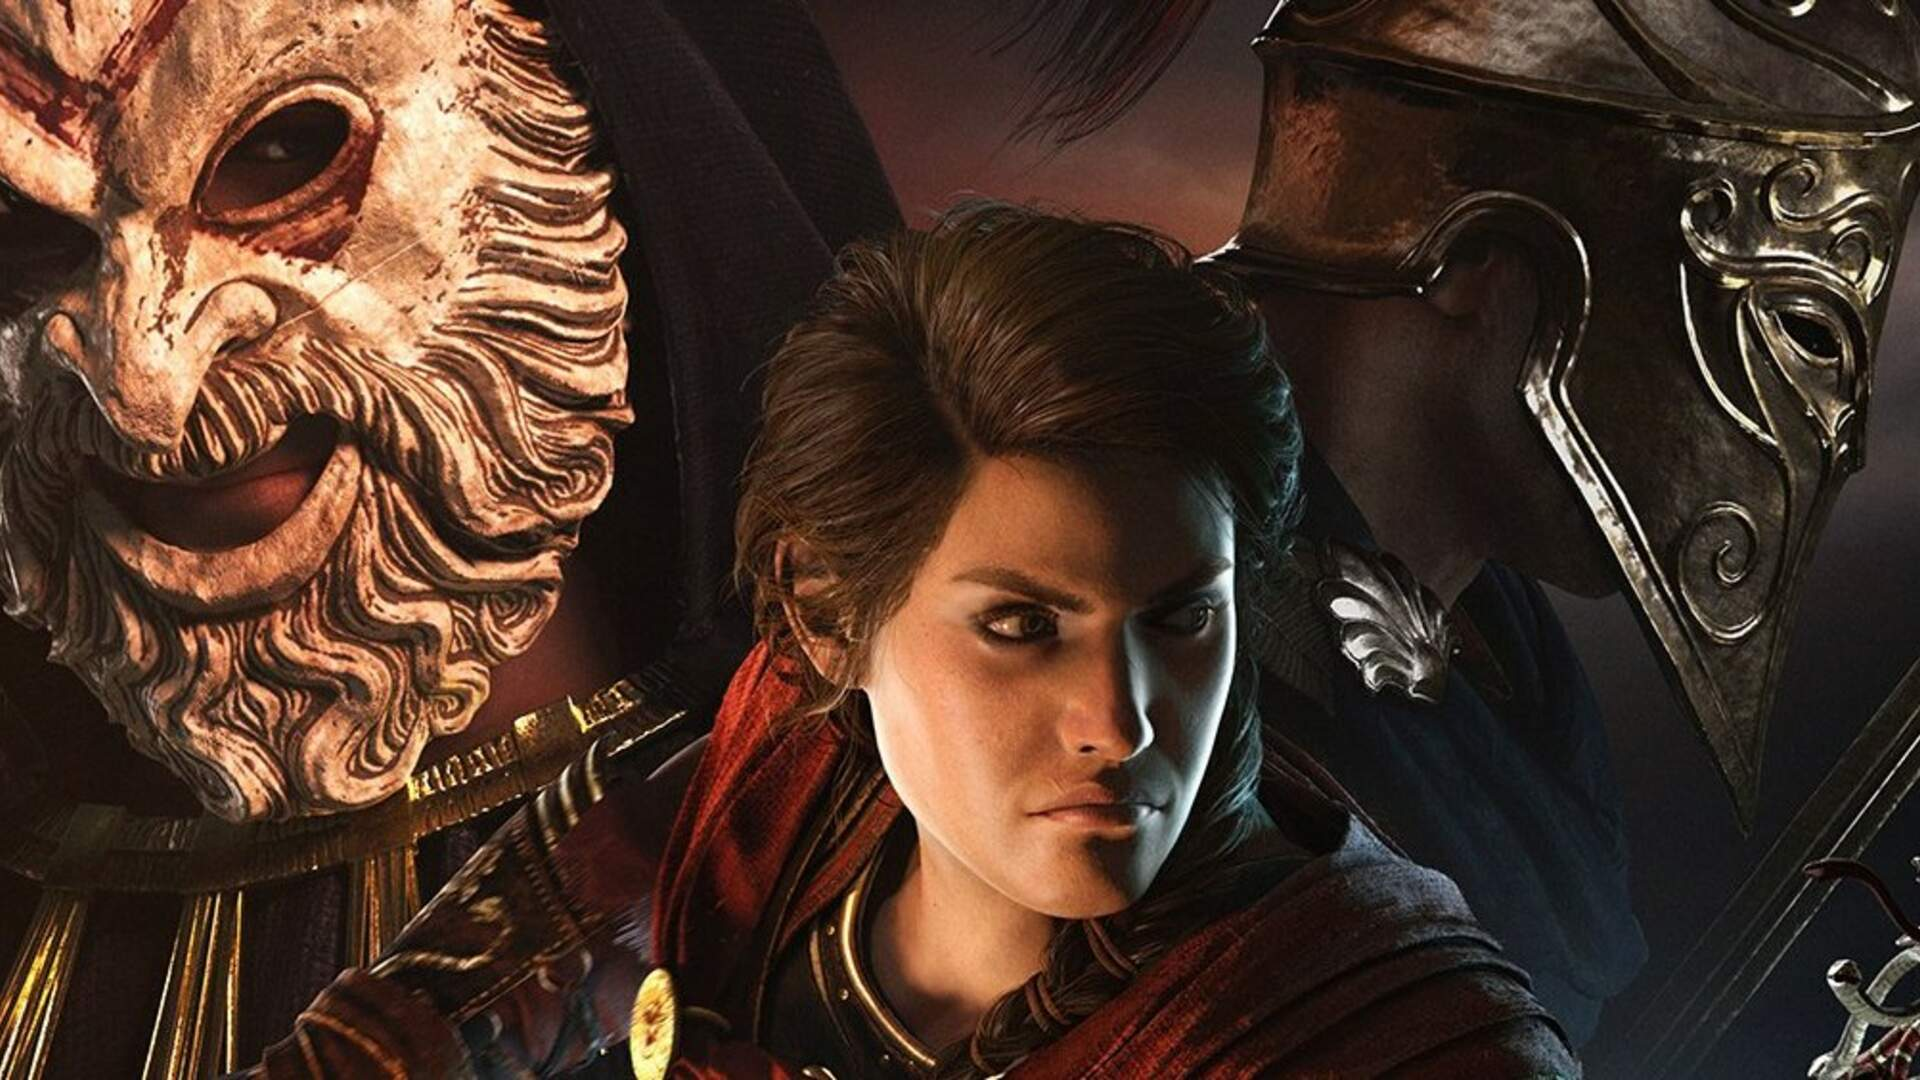 Assassin's Creed Odyssey Records a Large Rise on Steam Even With Physical Sales Down Over Origins